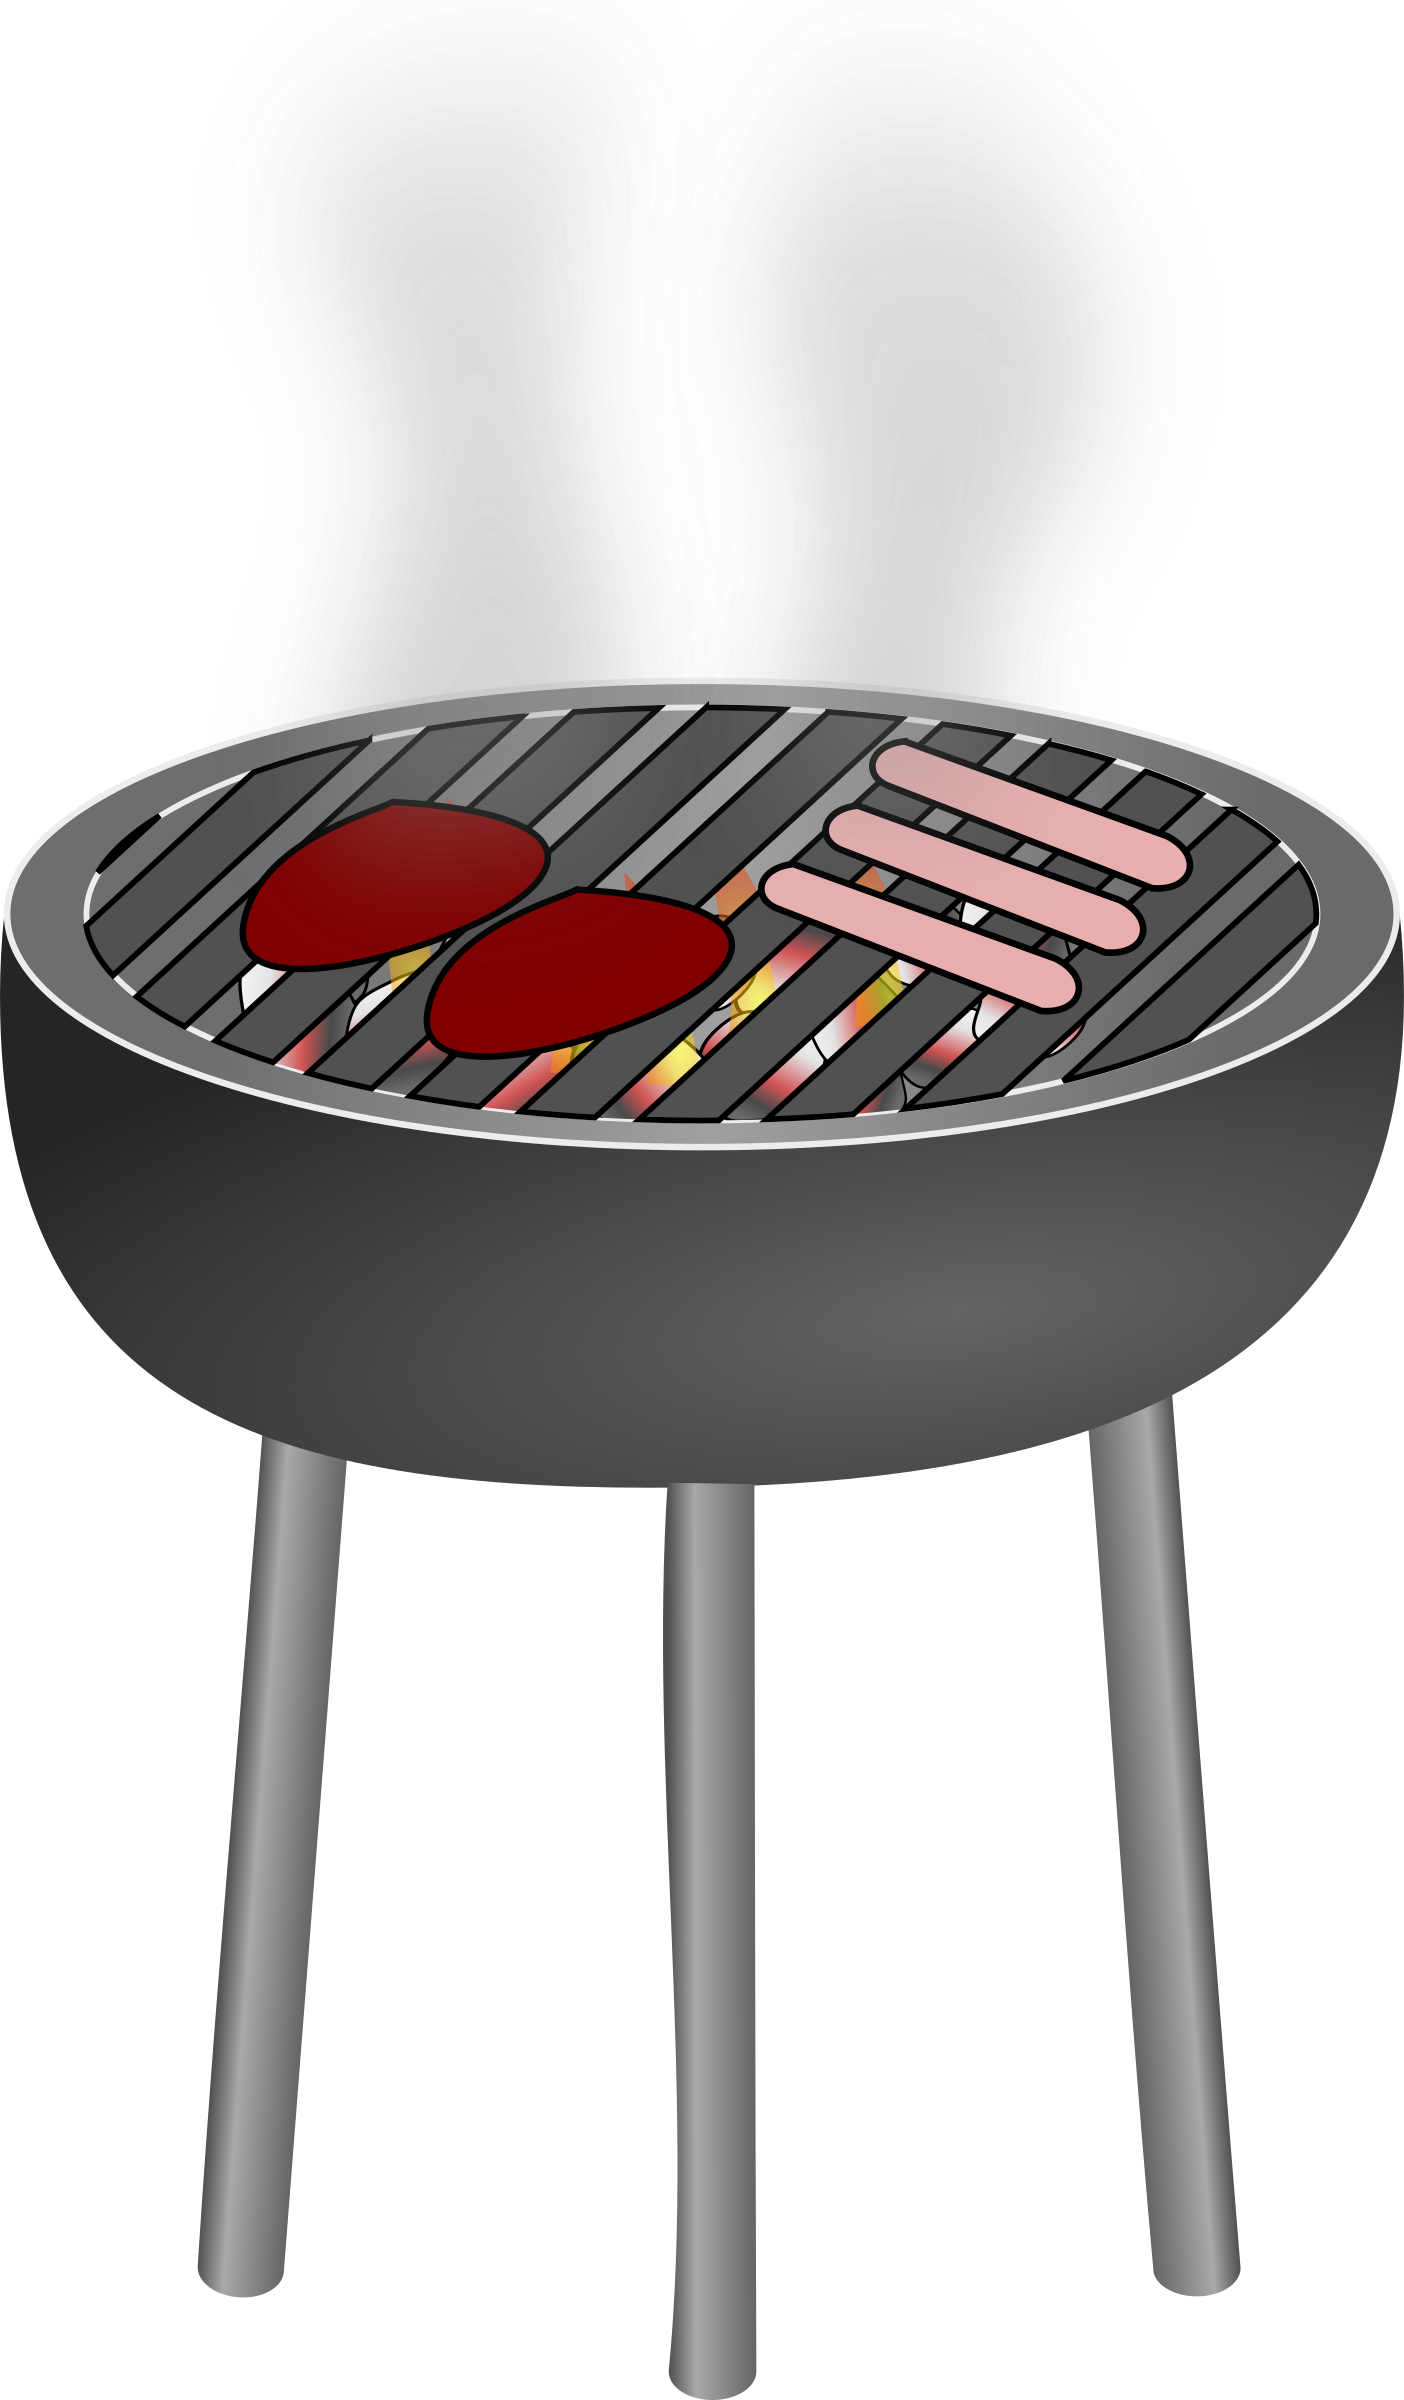 Grilling clipart logo. Barbeque big image png